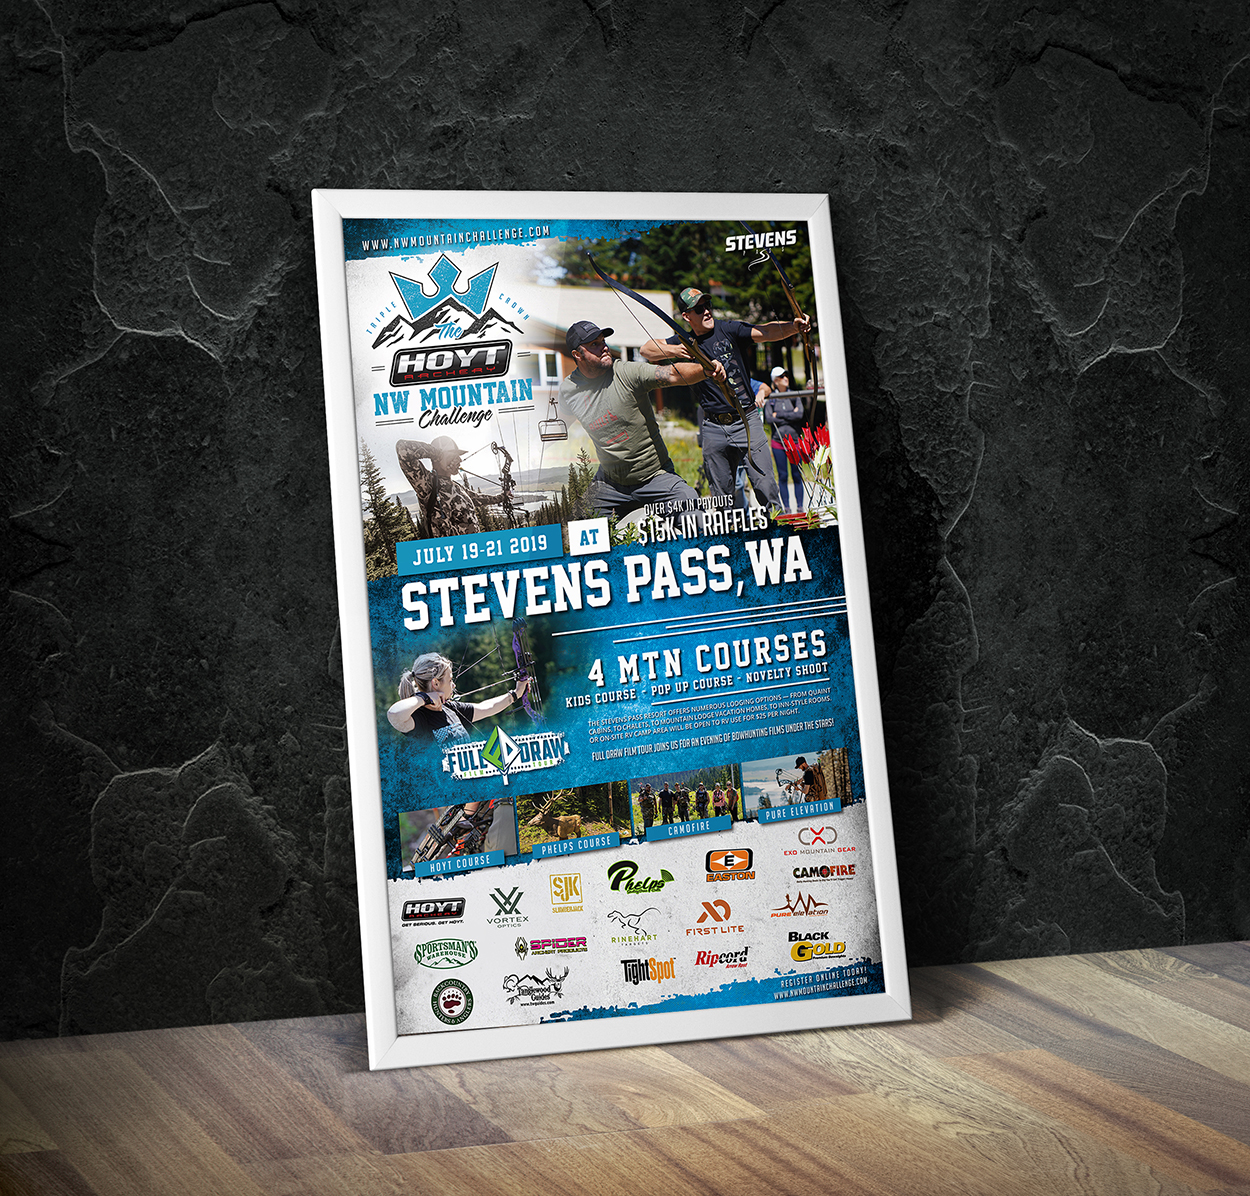 NW Mountain Challenge 3D Archery Shoot Event Posted Design